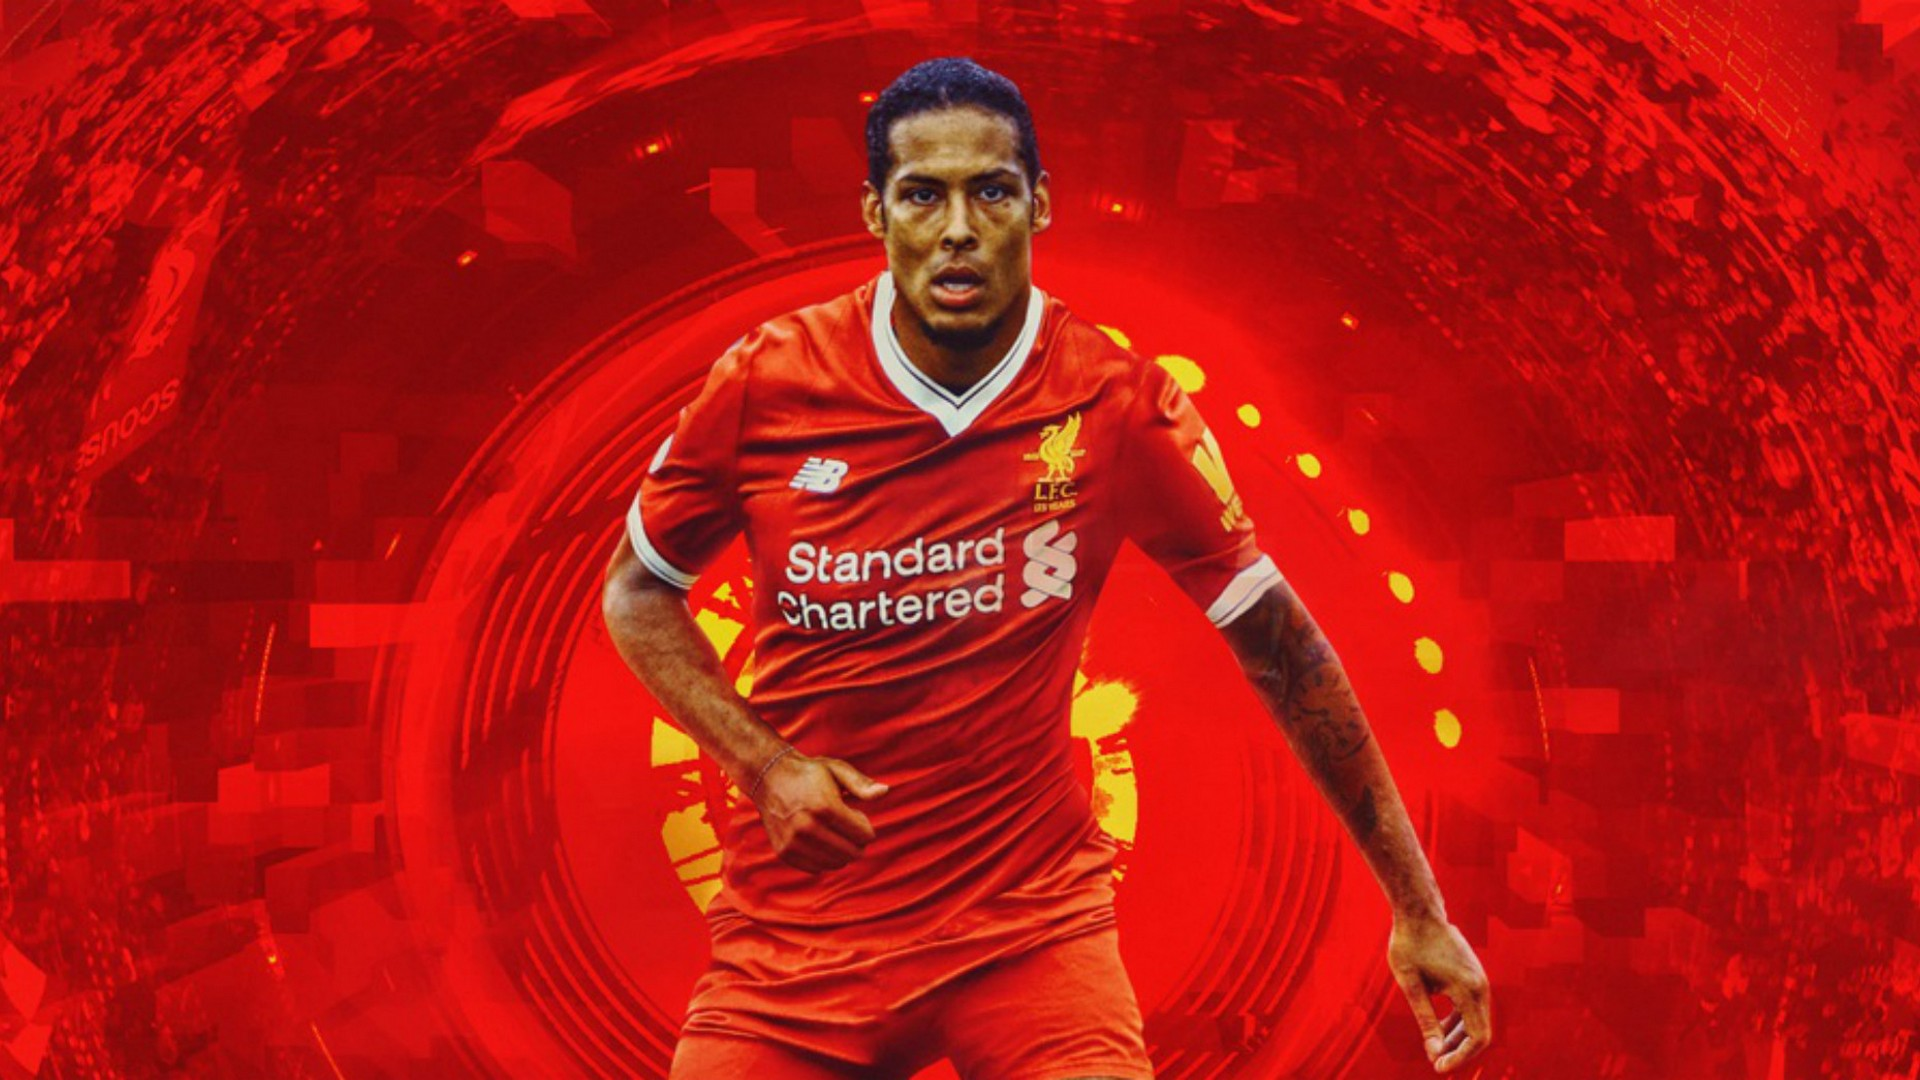 Live Iphone X Wallpaper From Commercial Virgil Van Dijk Liverpool Wallpaper 2020 Live Wallpaper Hd